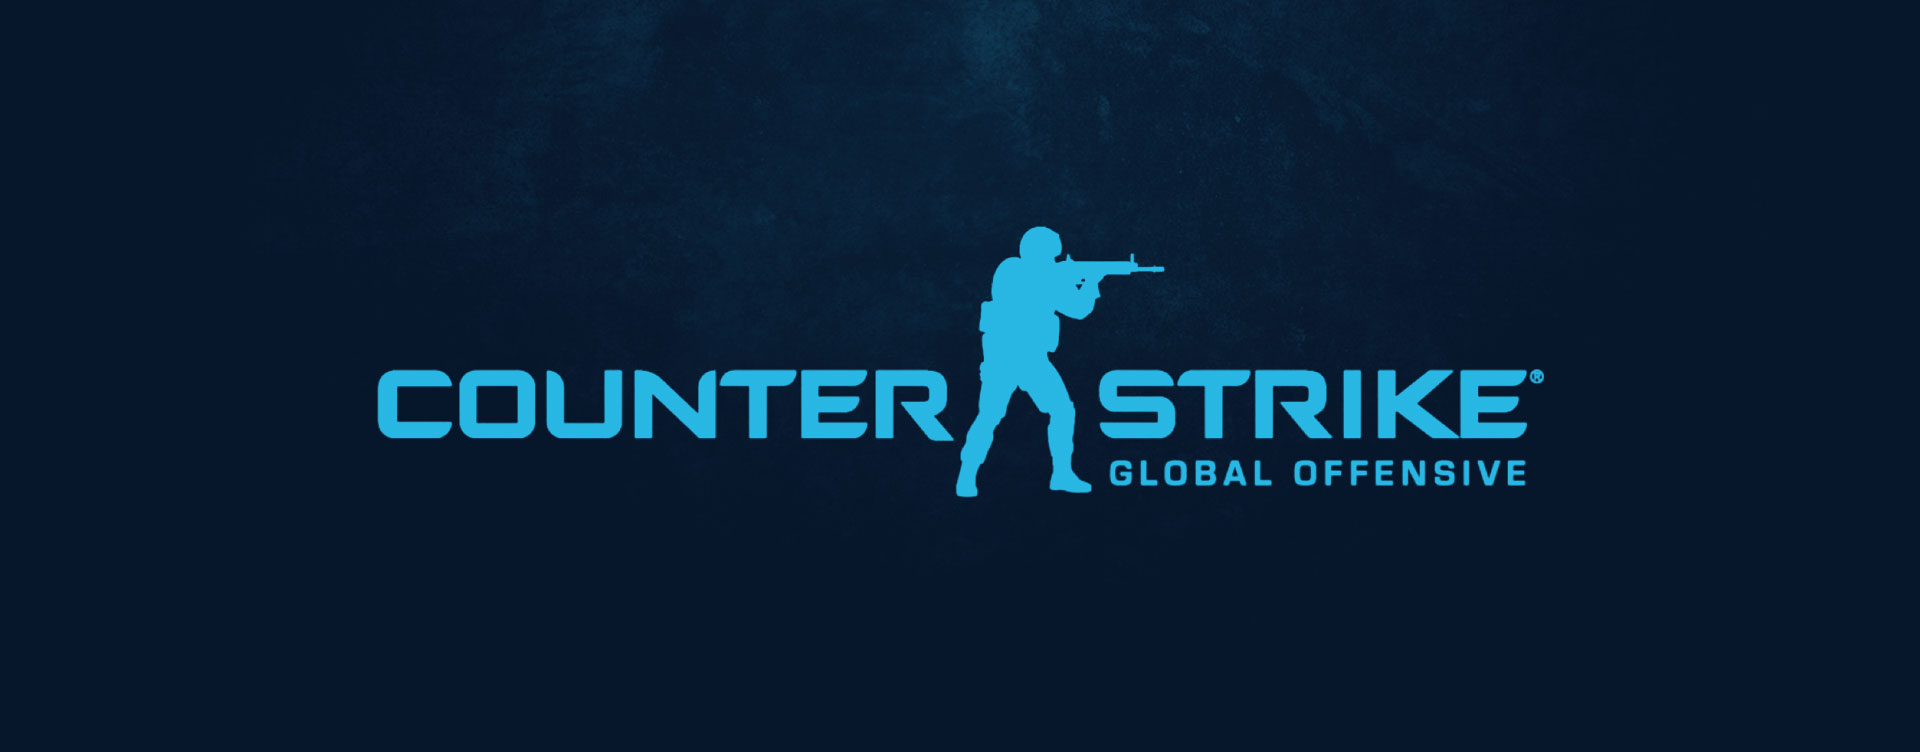 CS:GO - Counter Strike: Global Offensive